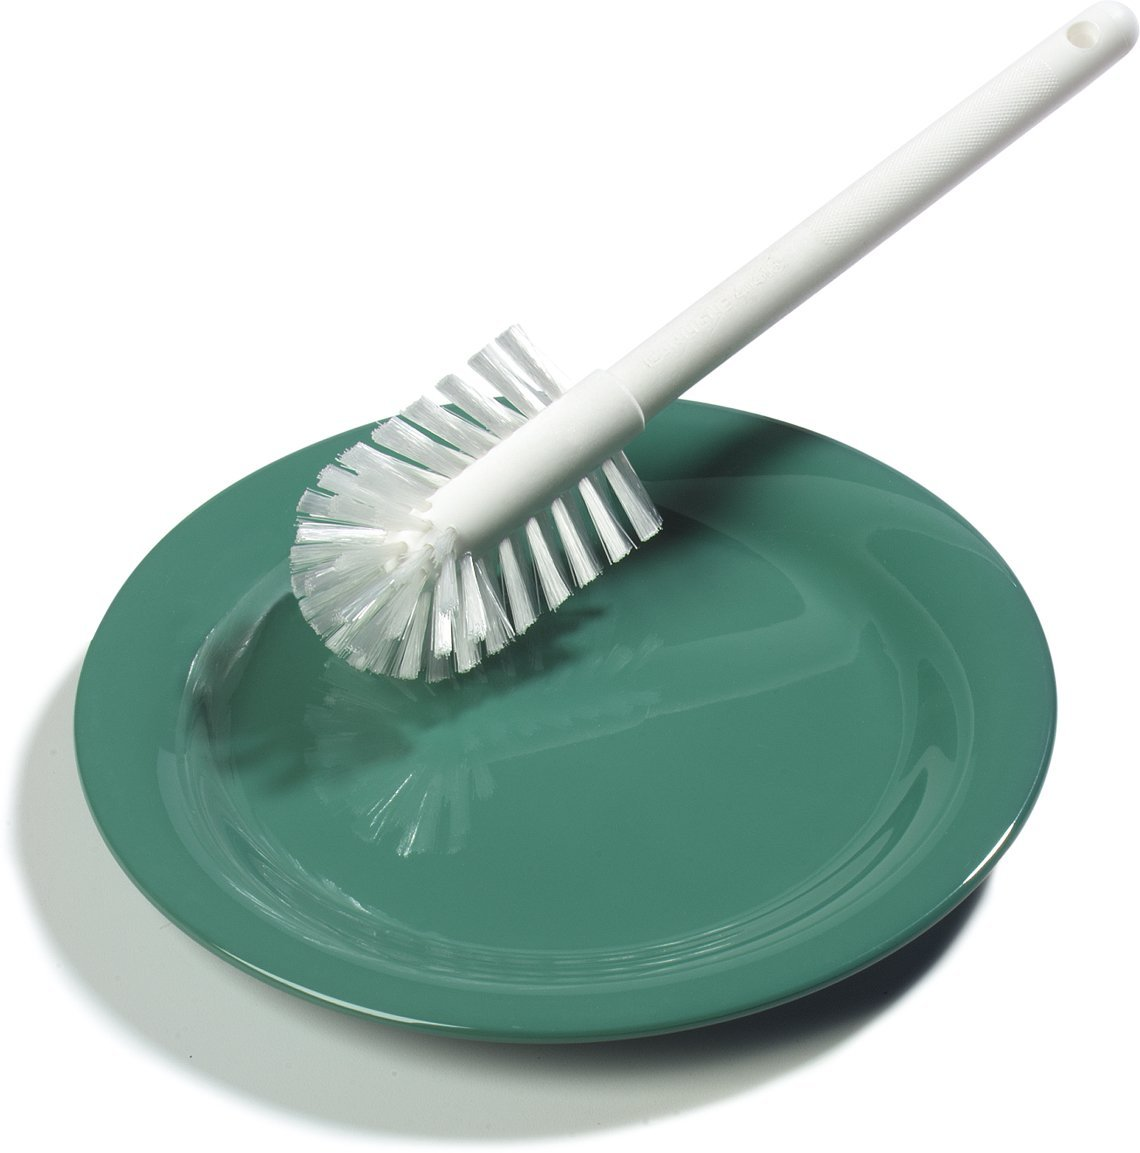 Carlisle Sparta Dish Brush 7 Dish brush removes food particles from dishware Brush has a flat side to assist in removing caked-on food from dishware Block and handle are made of plastic for durability